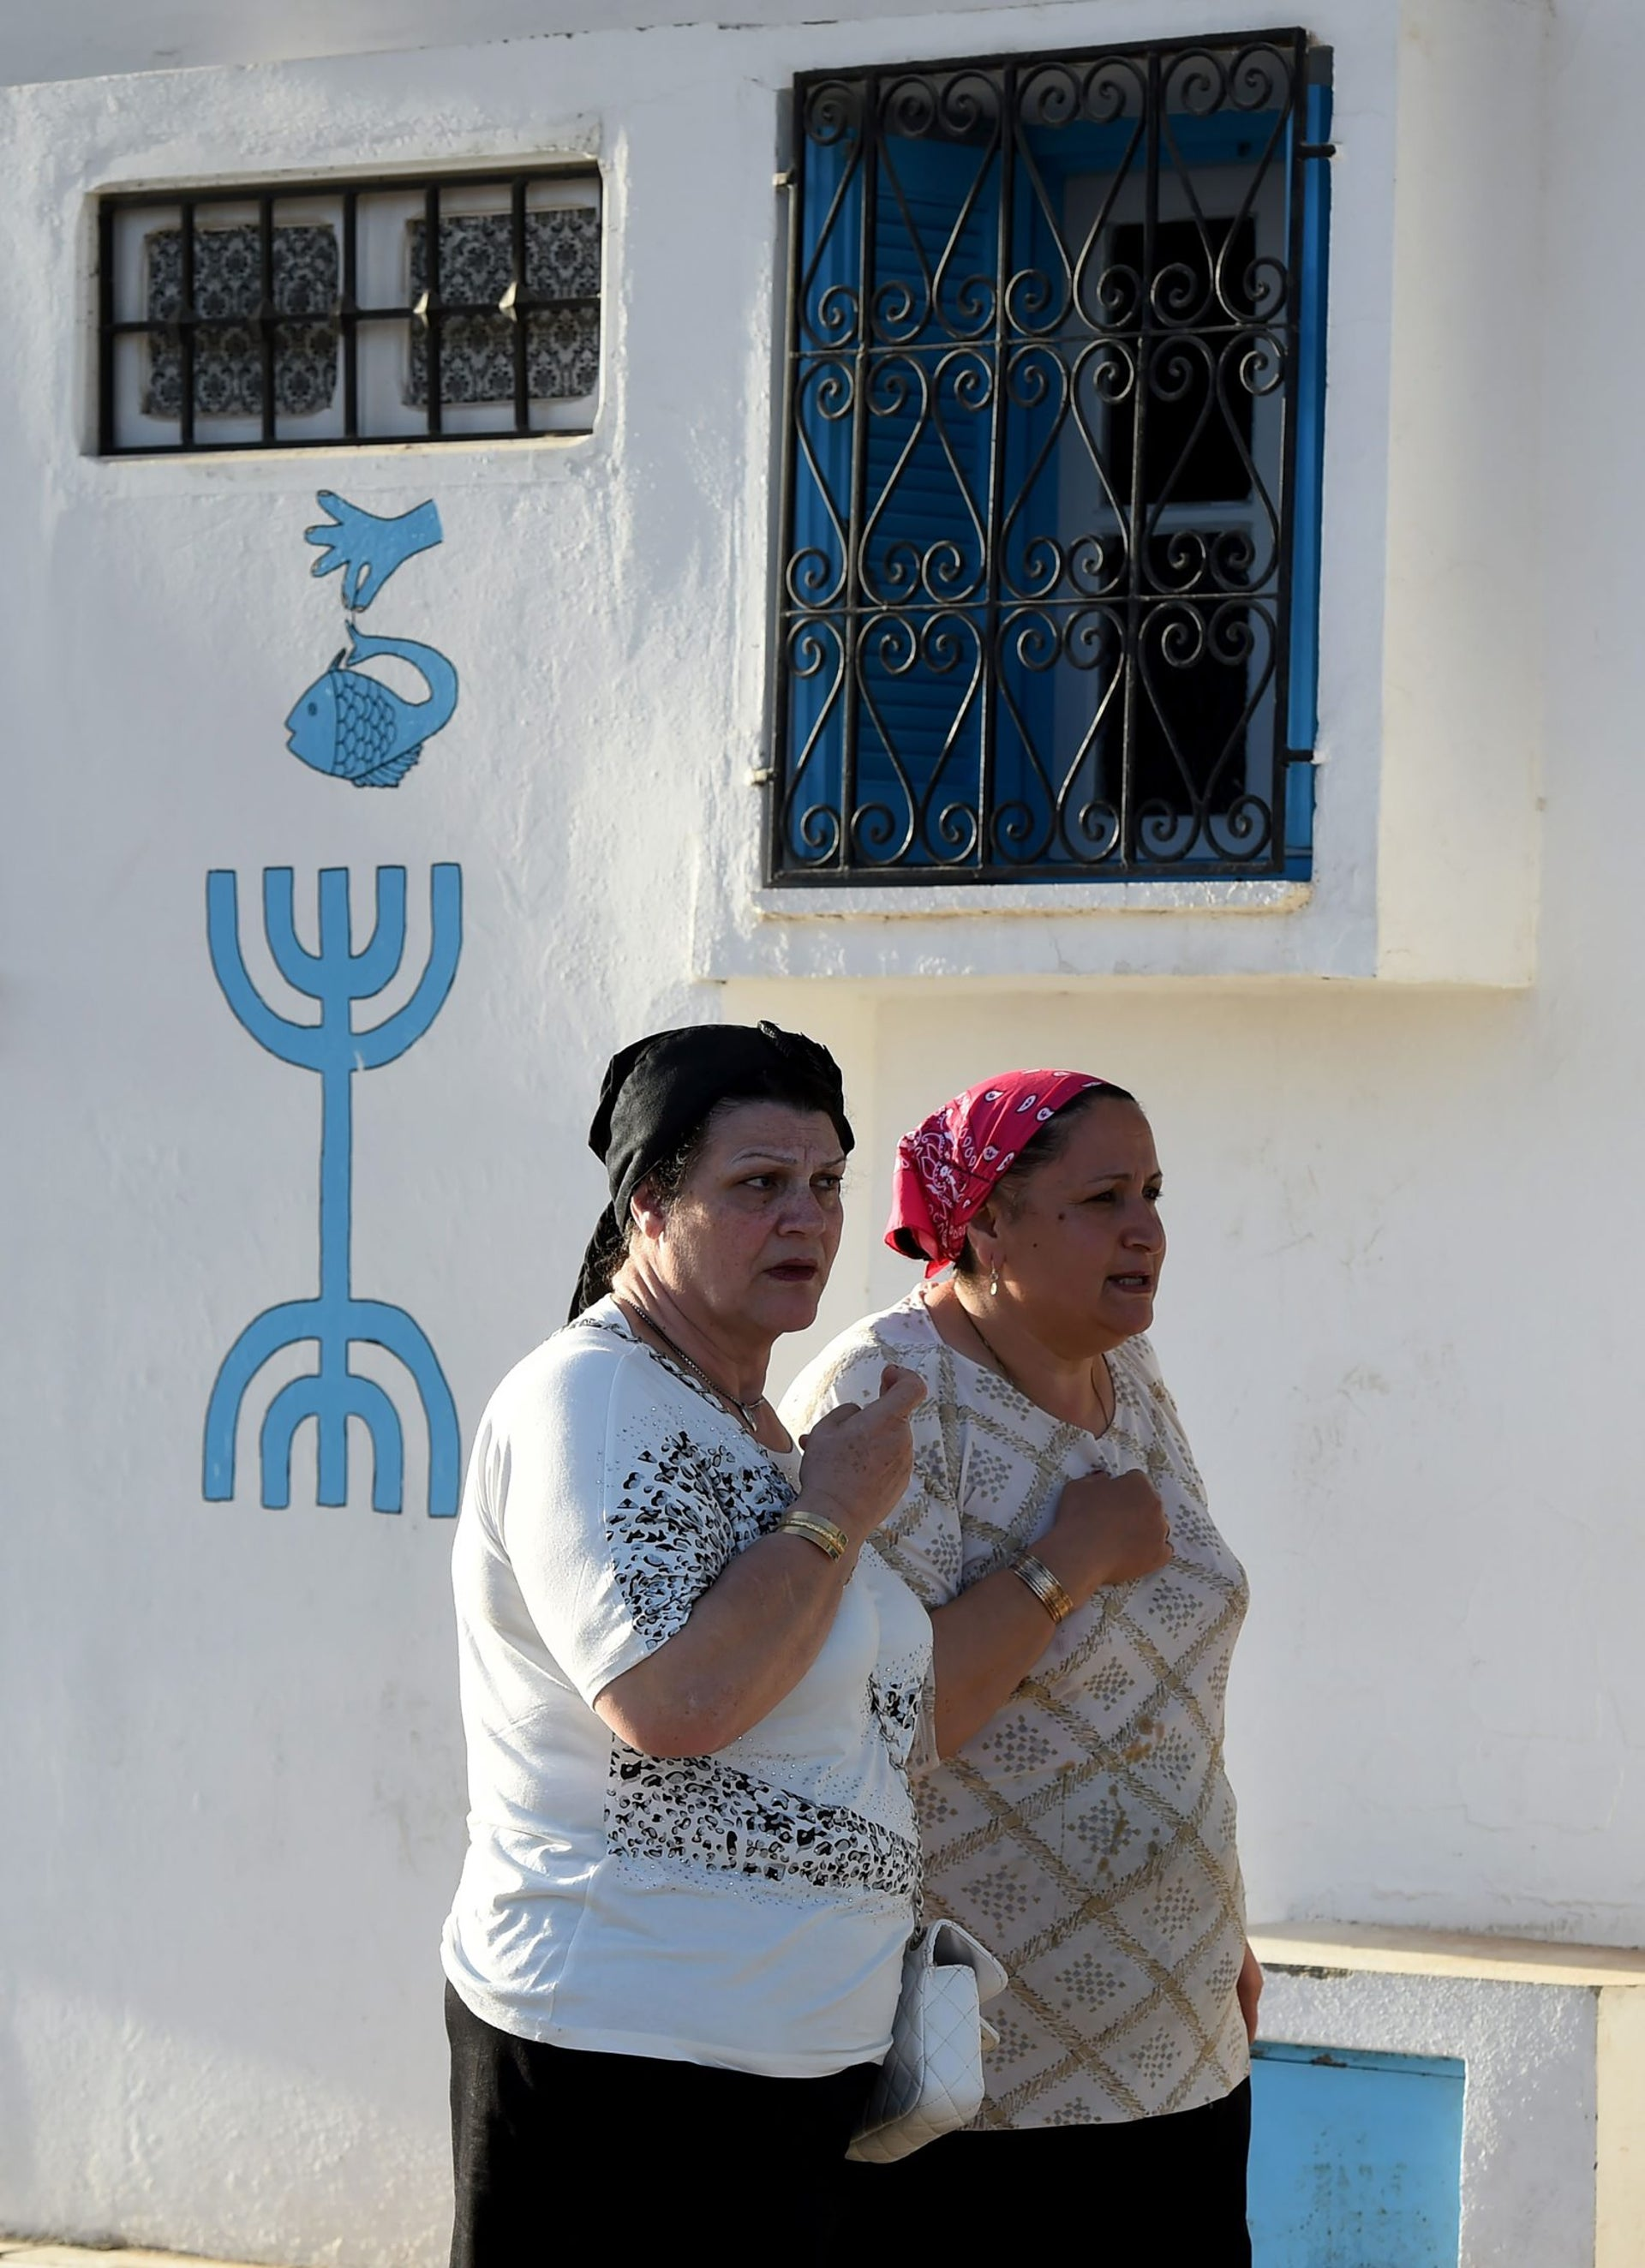 Tunisian Jewish women walk in the village of Hara Kebira on the Tunisian resort island of Djerba one day before the start of a two-day annual pilgrimage, on May 24, 2016.